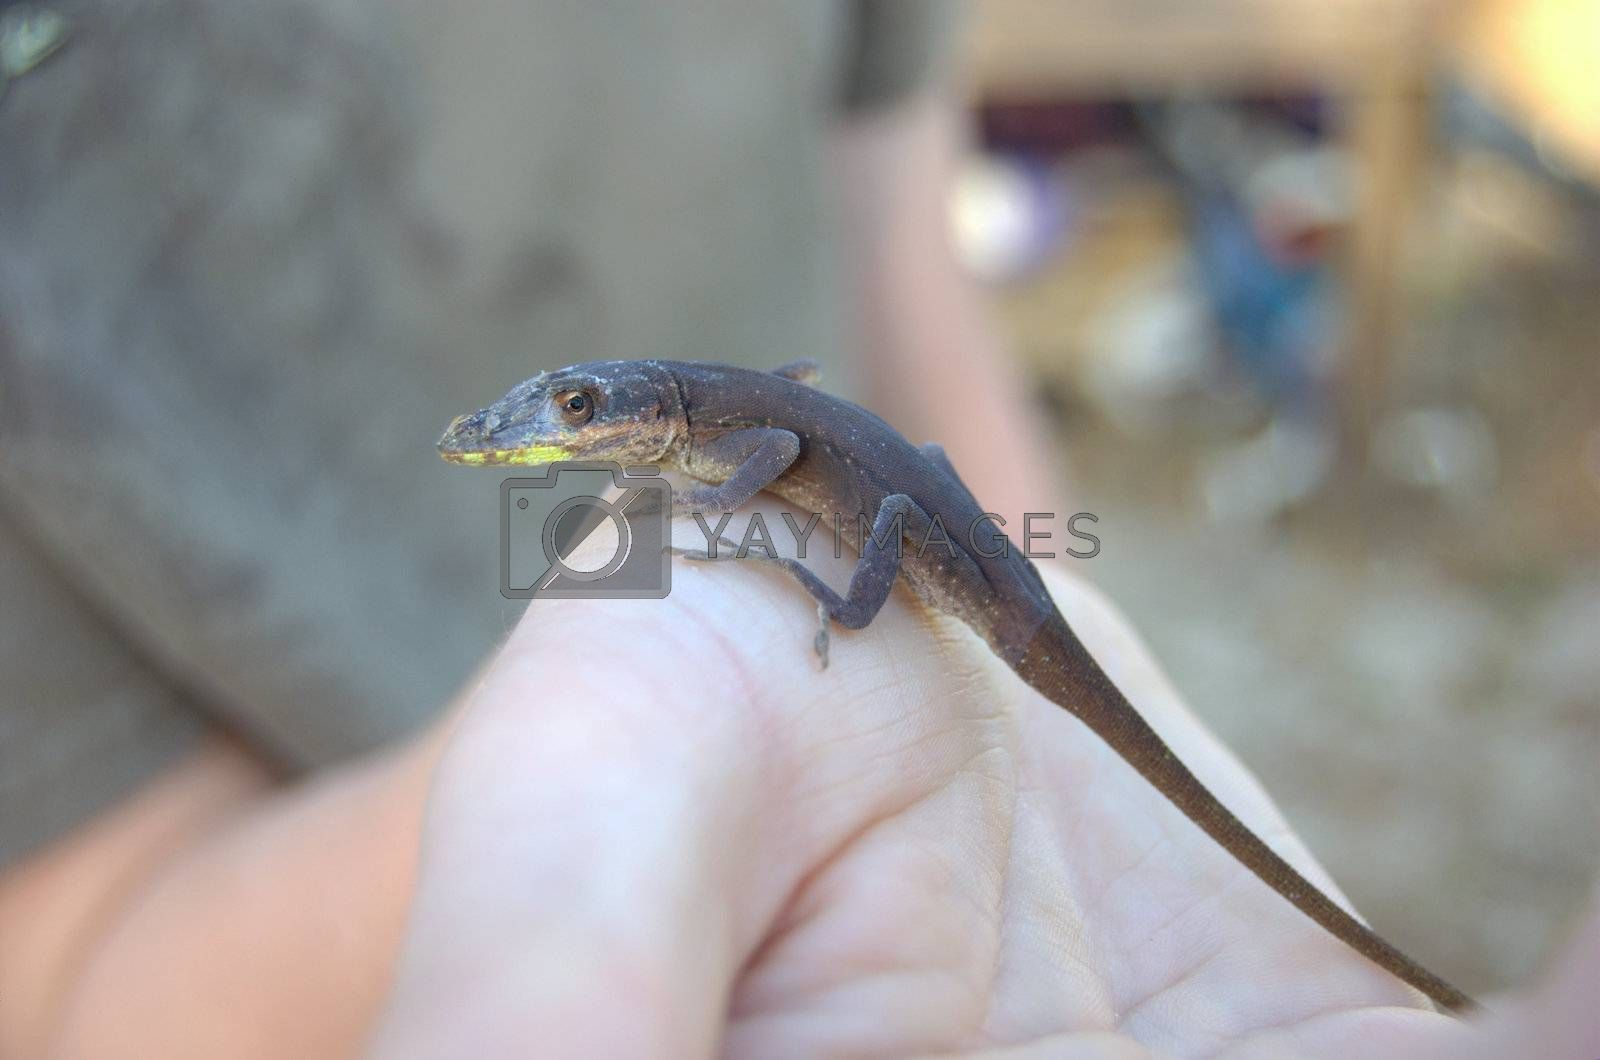 lizard being held on hand